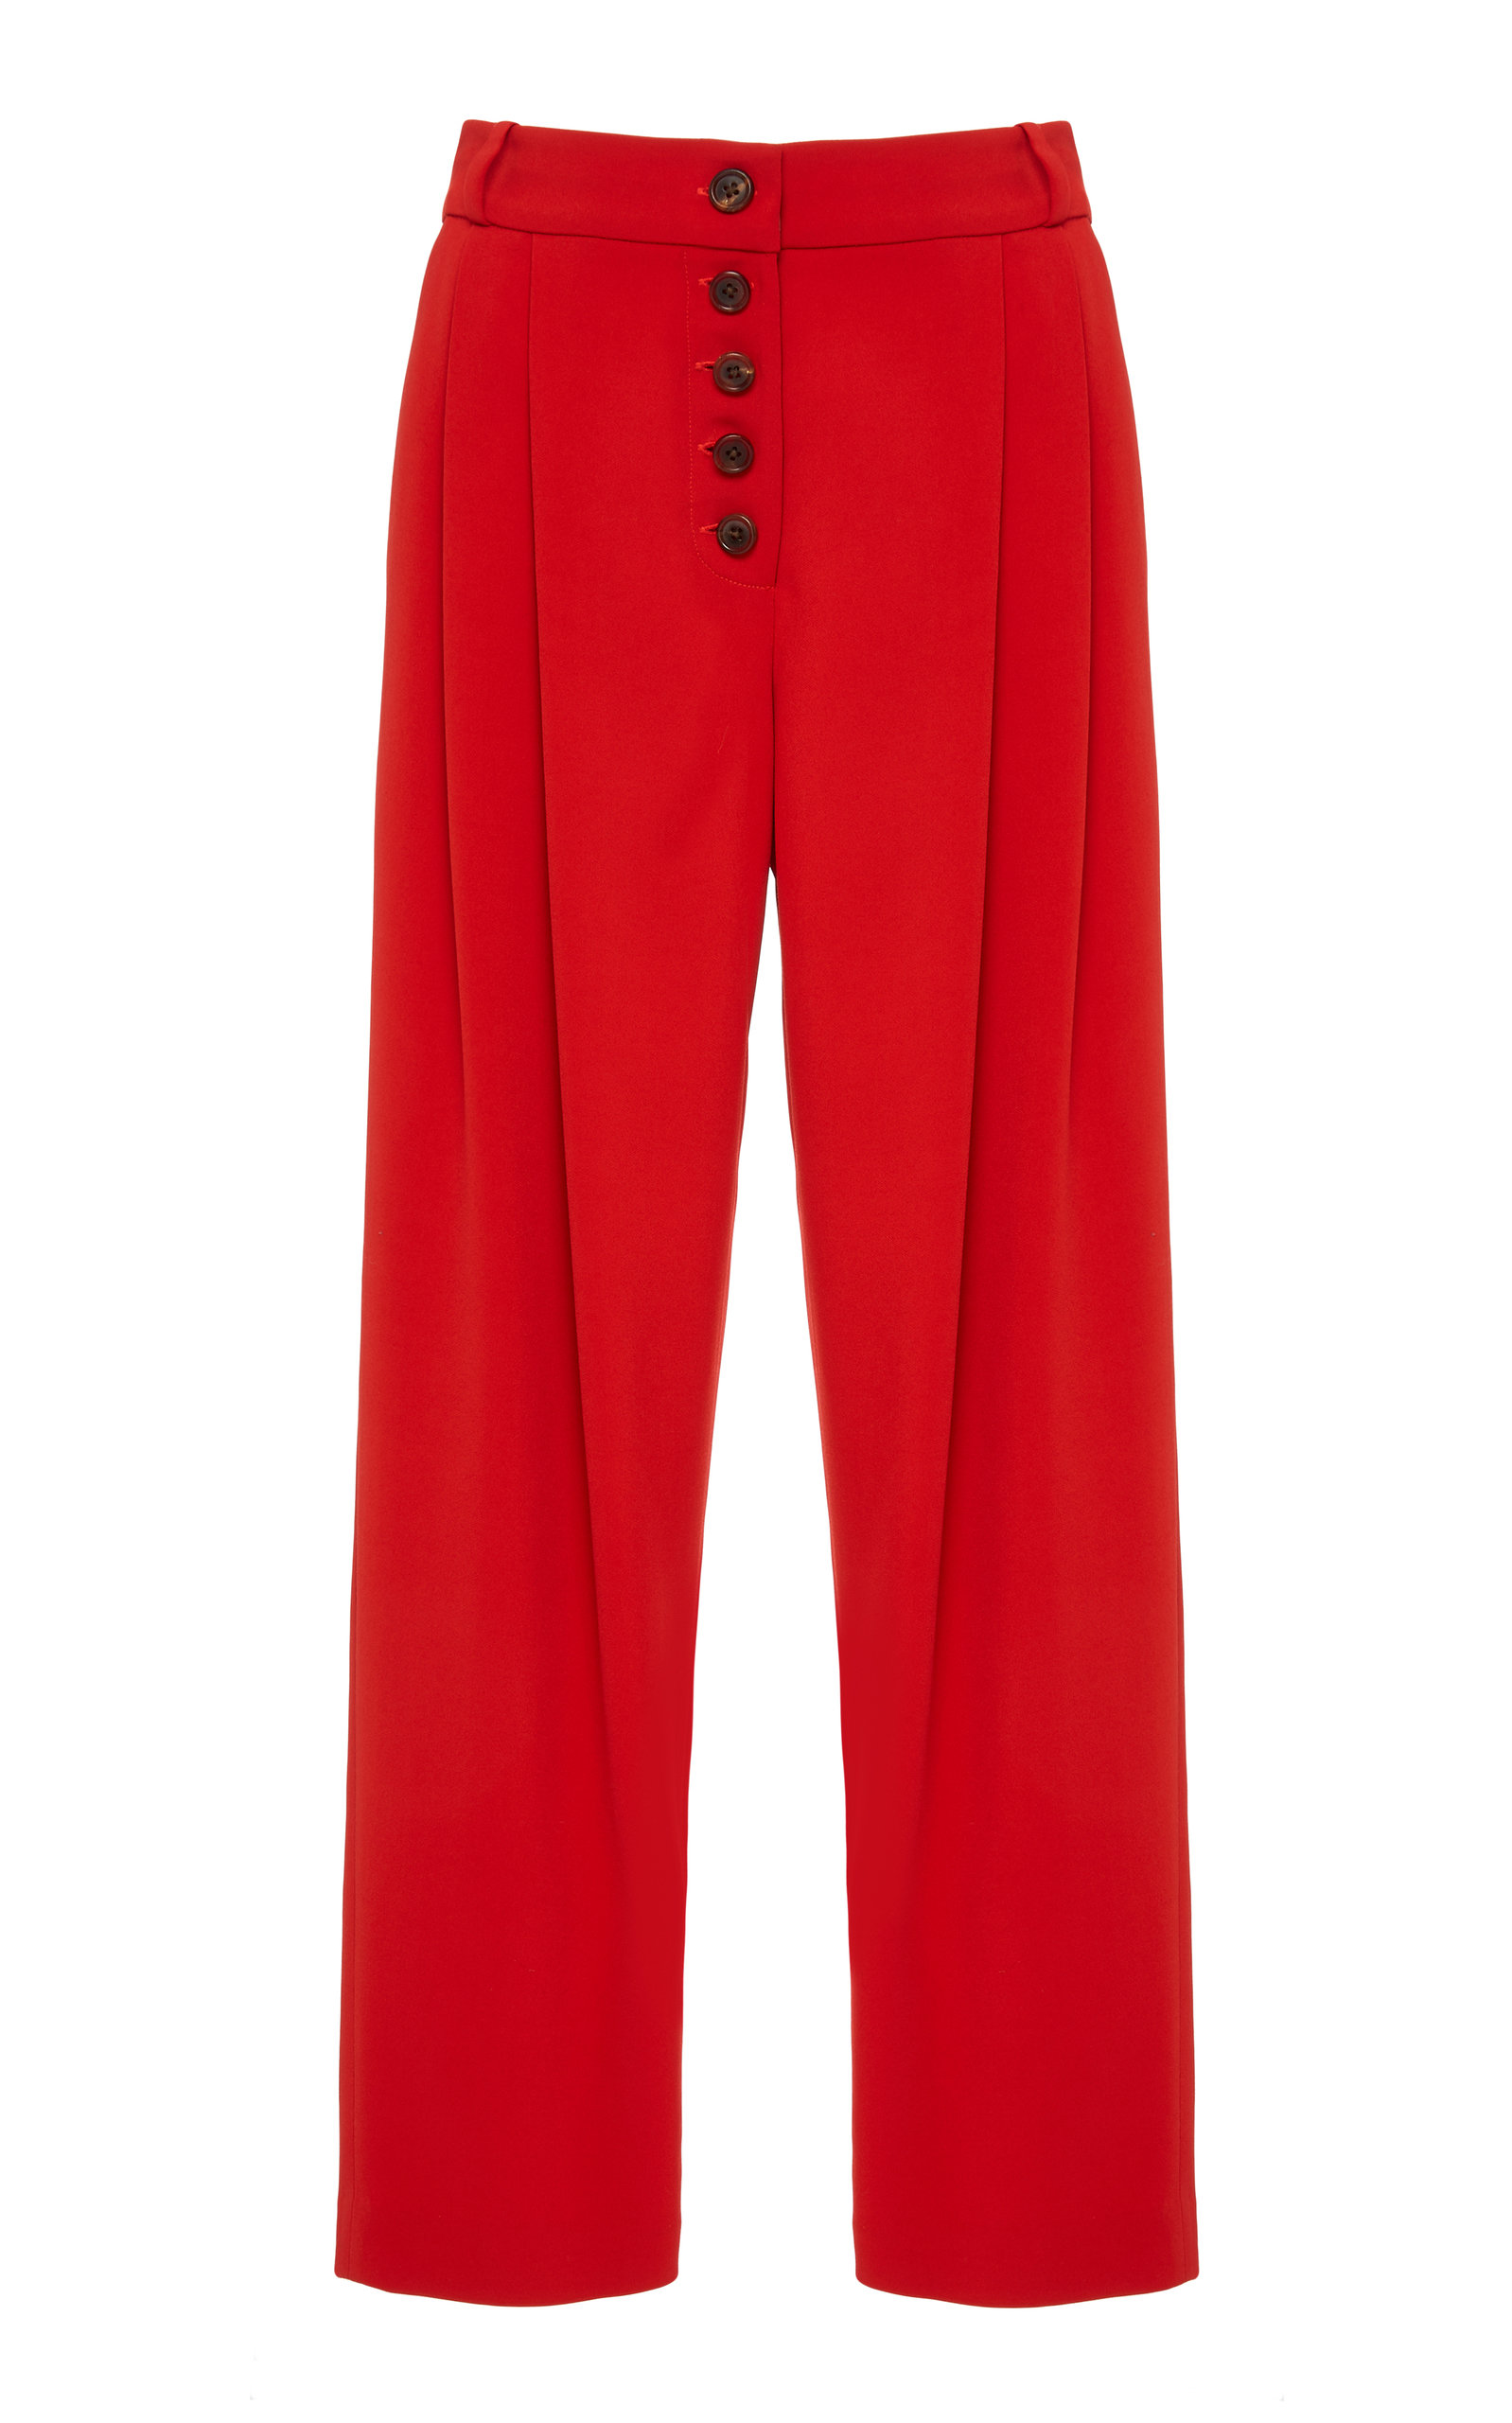 Russel High-Rise Pleated Tapered Pant in Red